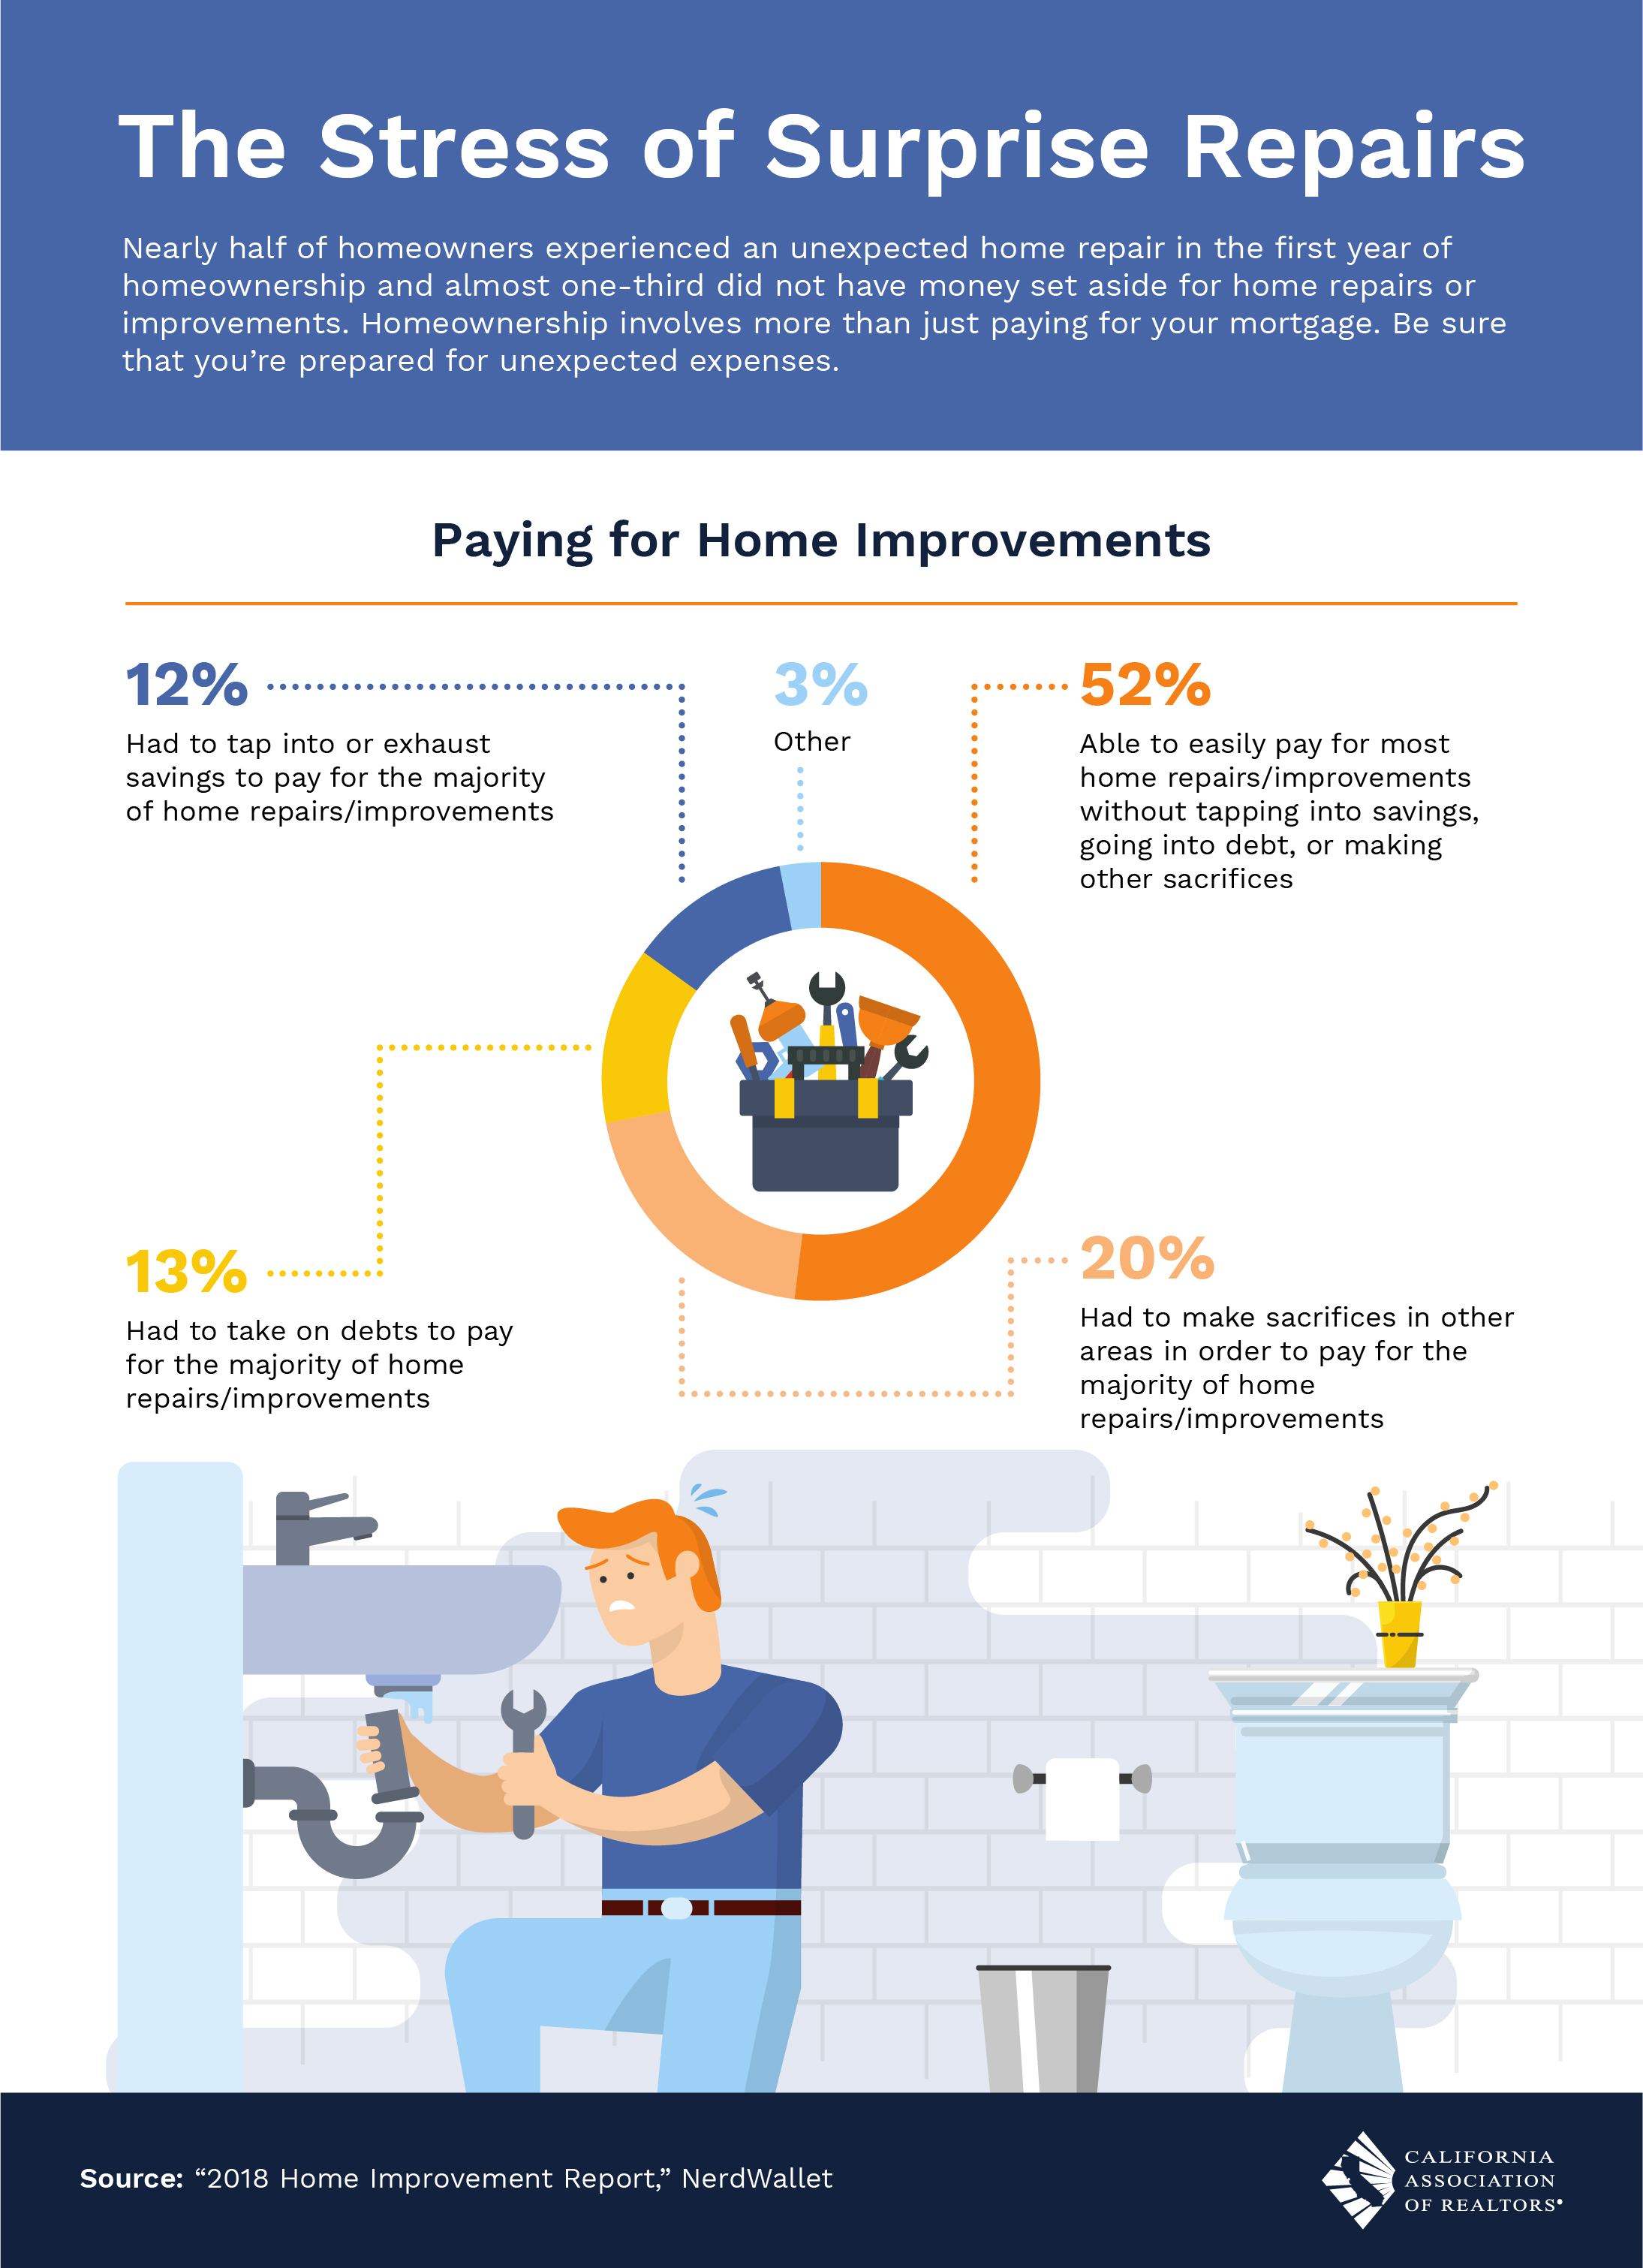 48% of homeowners can't afford basic emergency repairs at home.